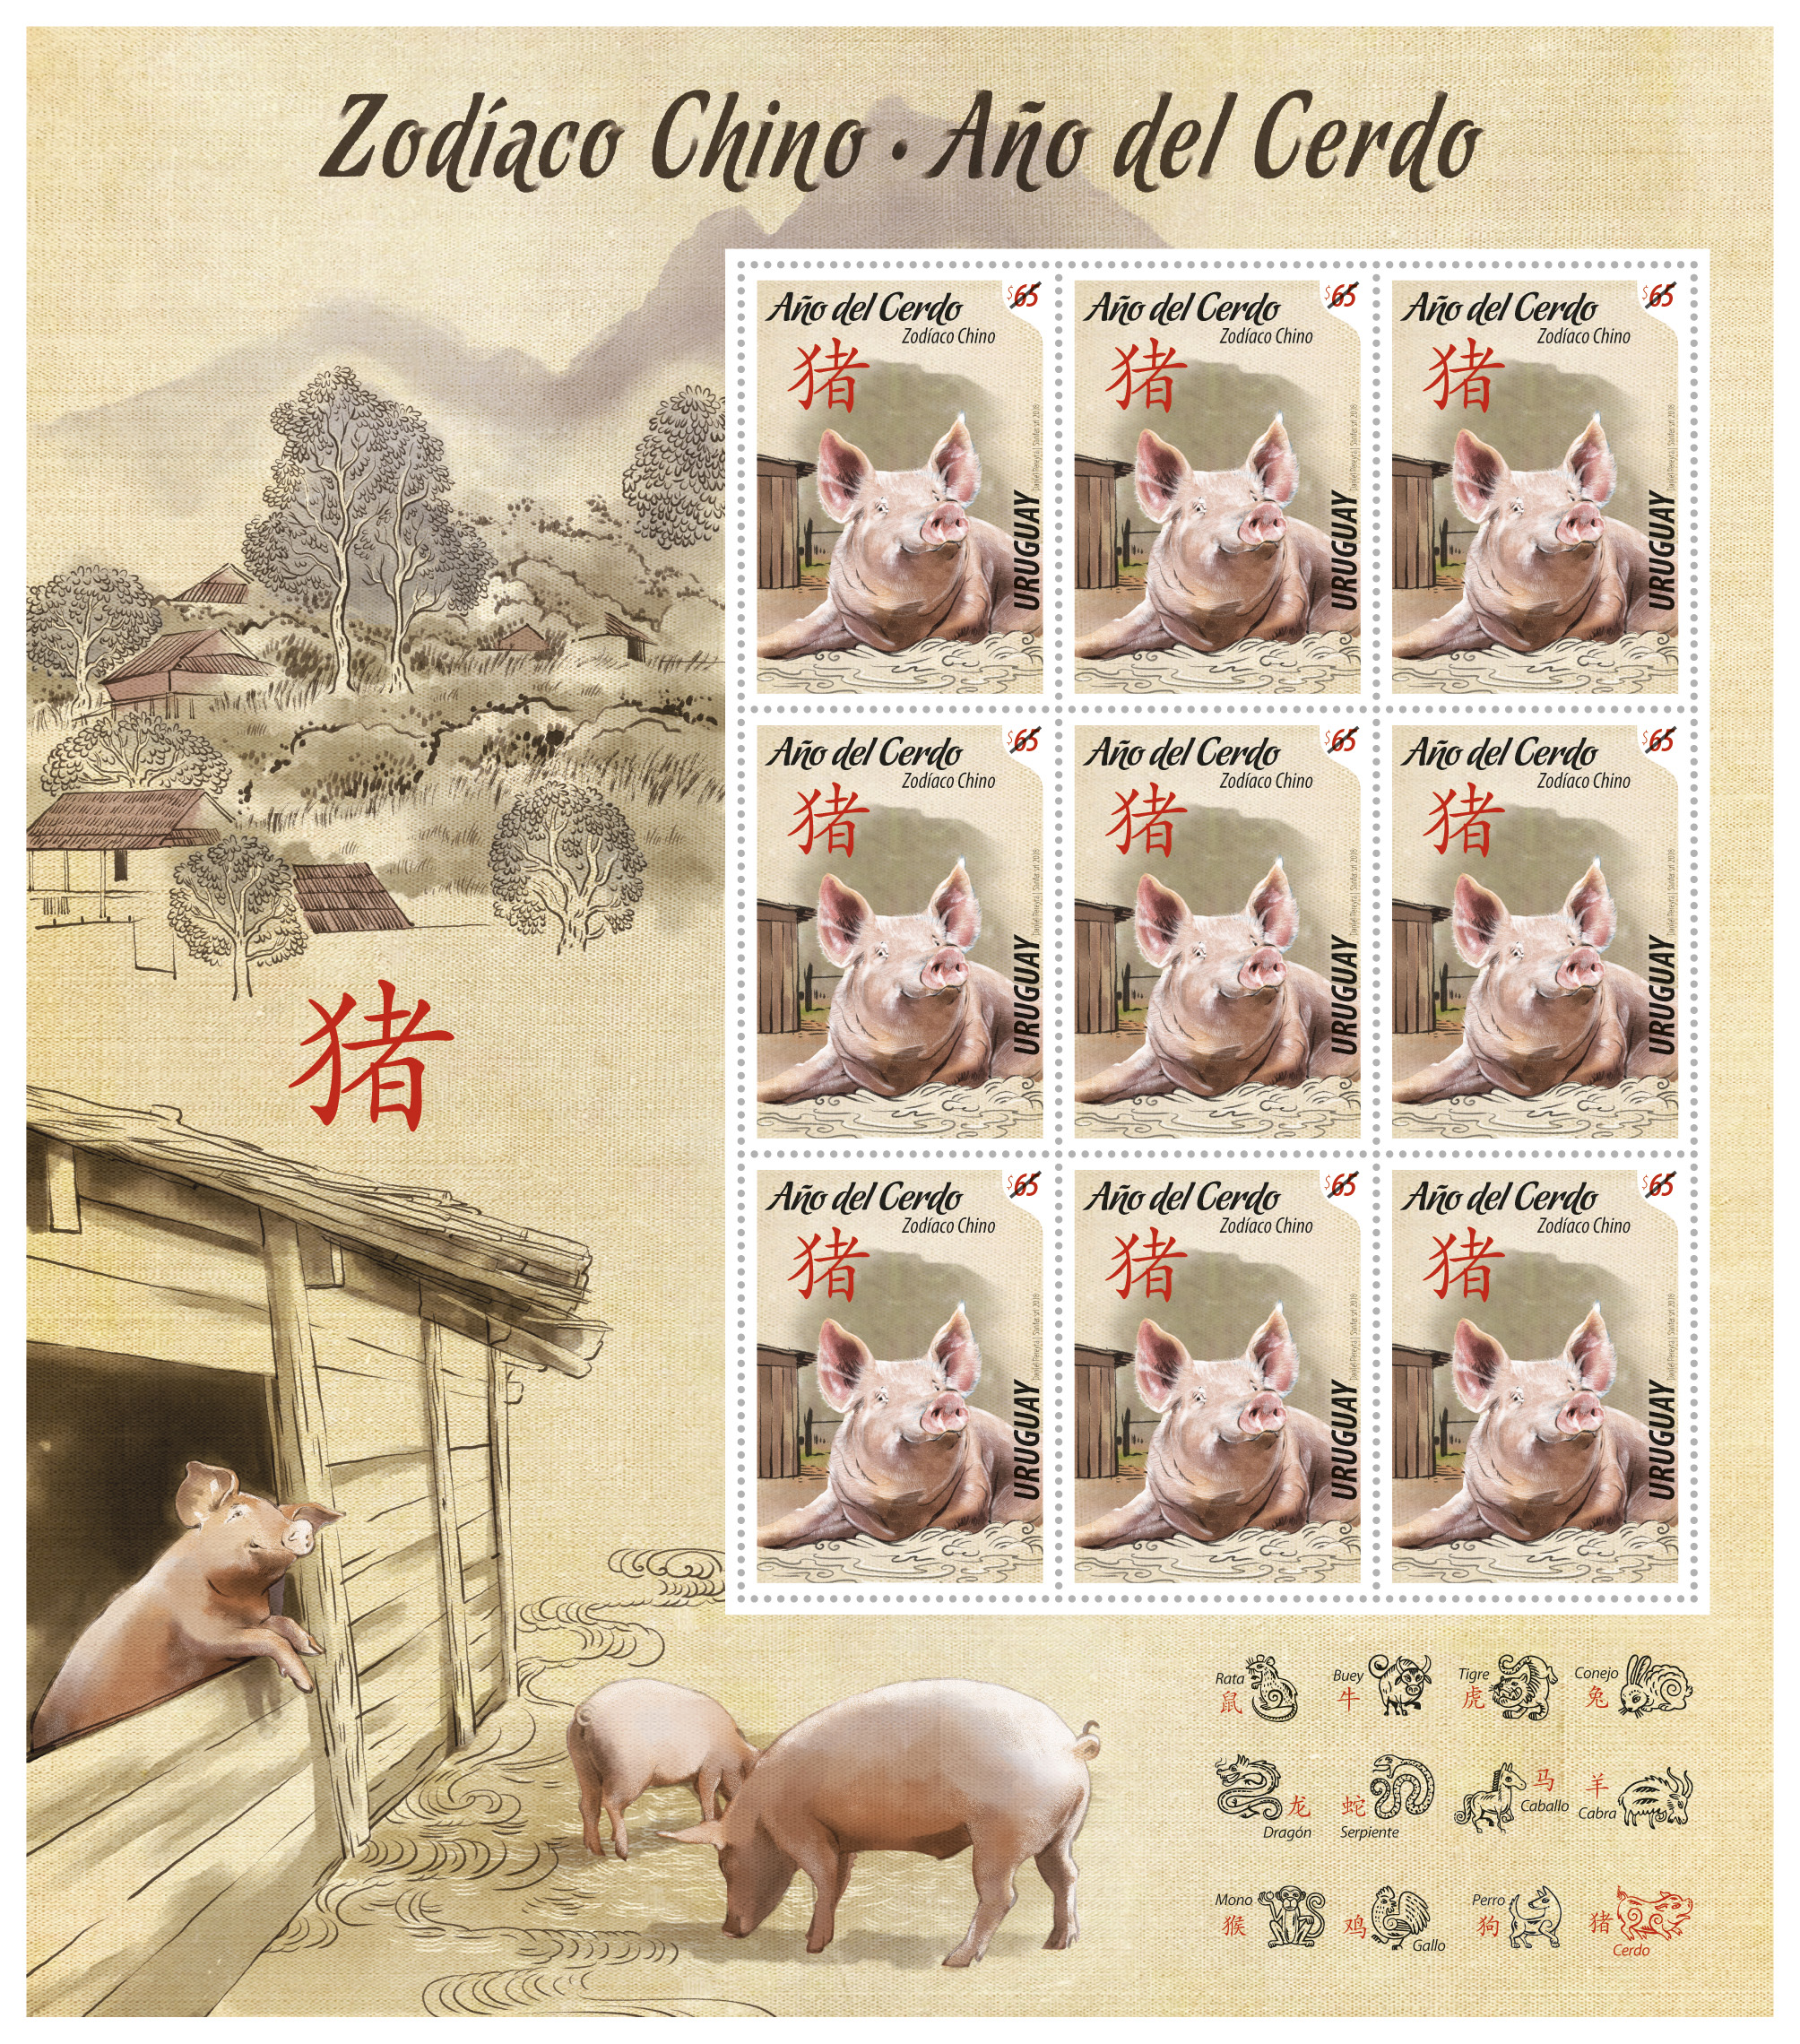 Uruguay - Year of the Pig (January 24, 2019) sheet of 9